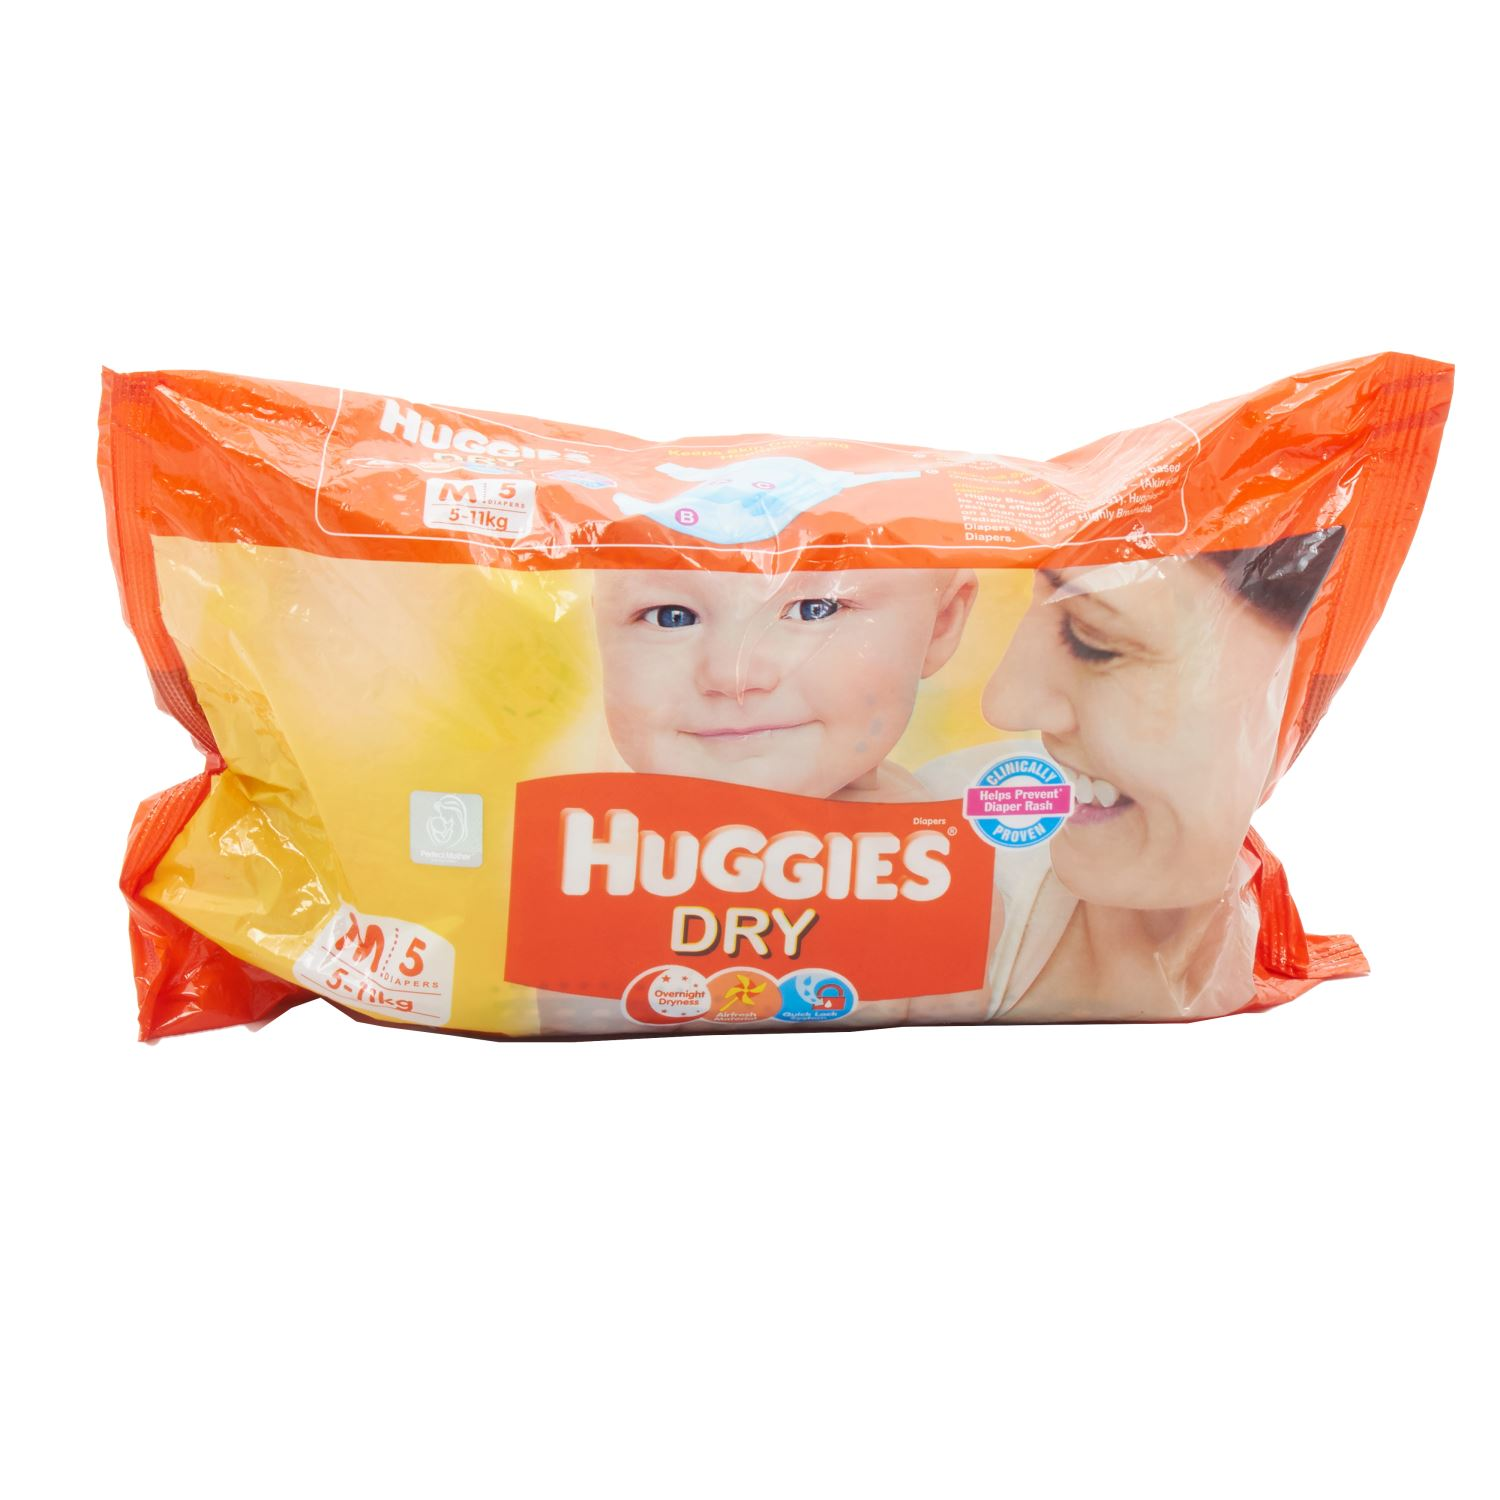 Huggies Dry Diapers Medium - 5 Nos